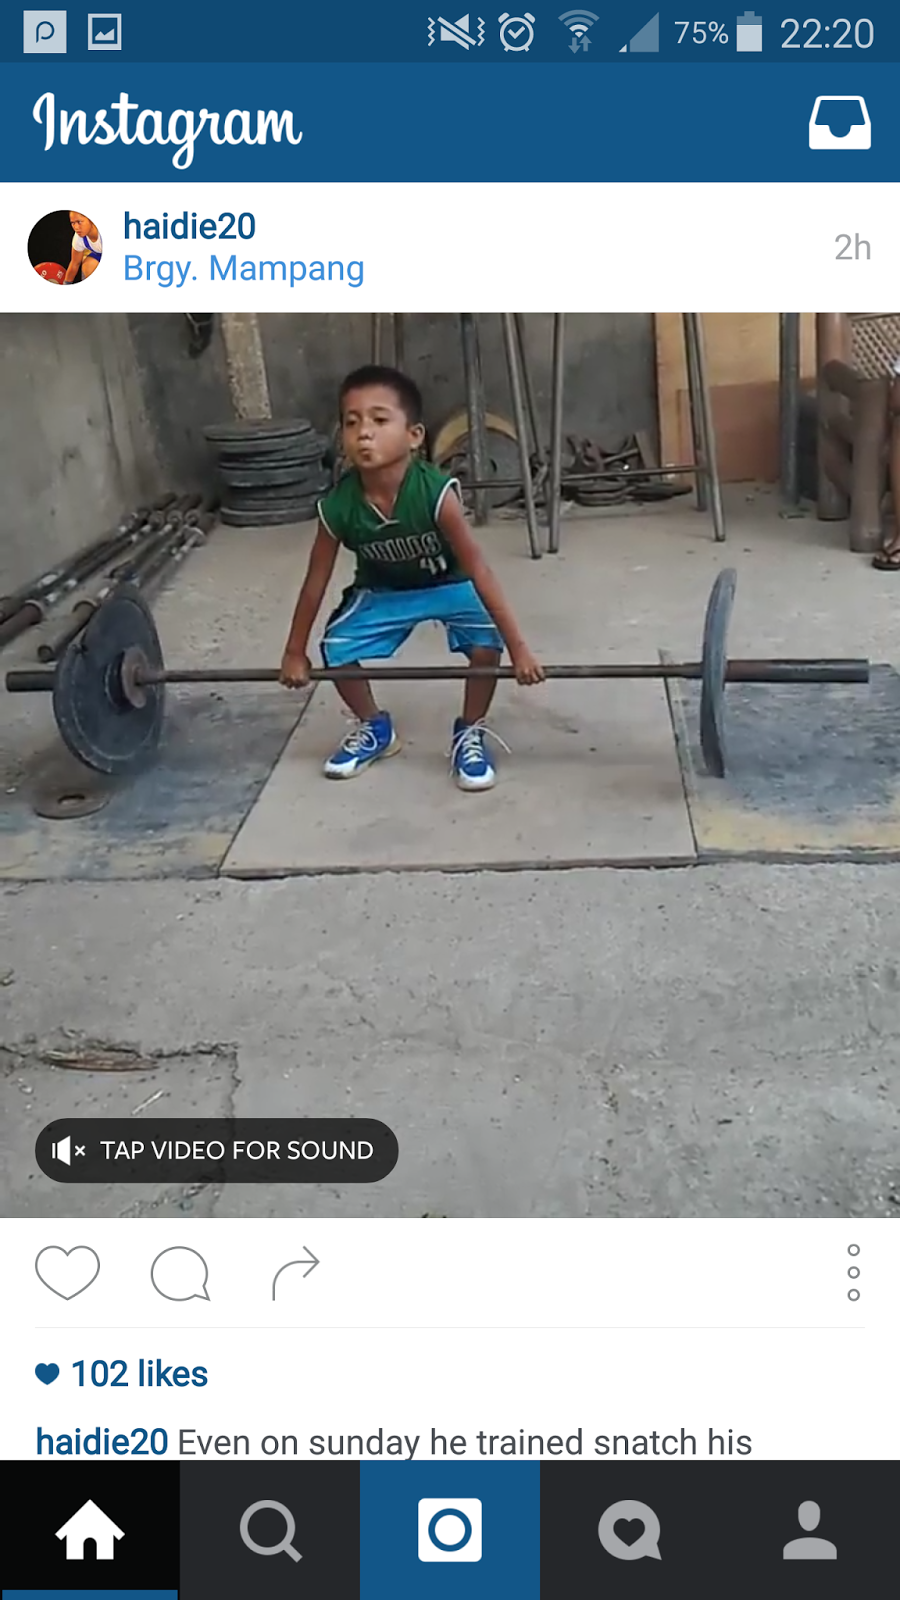 riseandshine screenshot 13png. contemporary screenshot riseandshine screenshot 13png she clips how the kids in filipines train  many dont have shoes with riseandshine screenshot 13png i